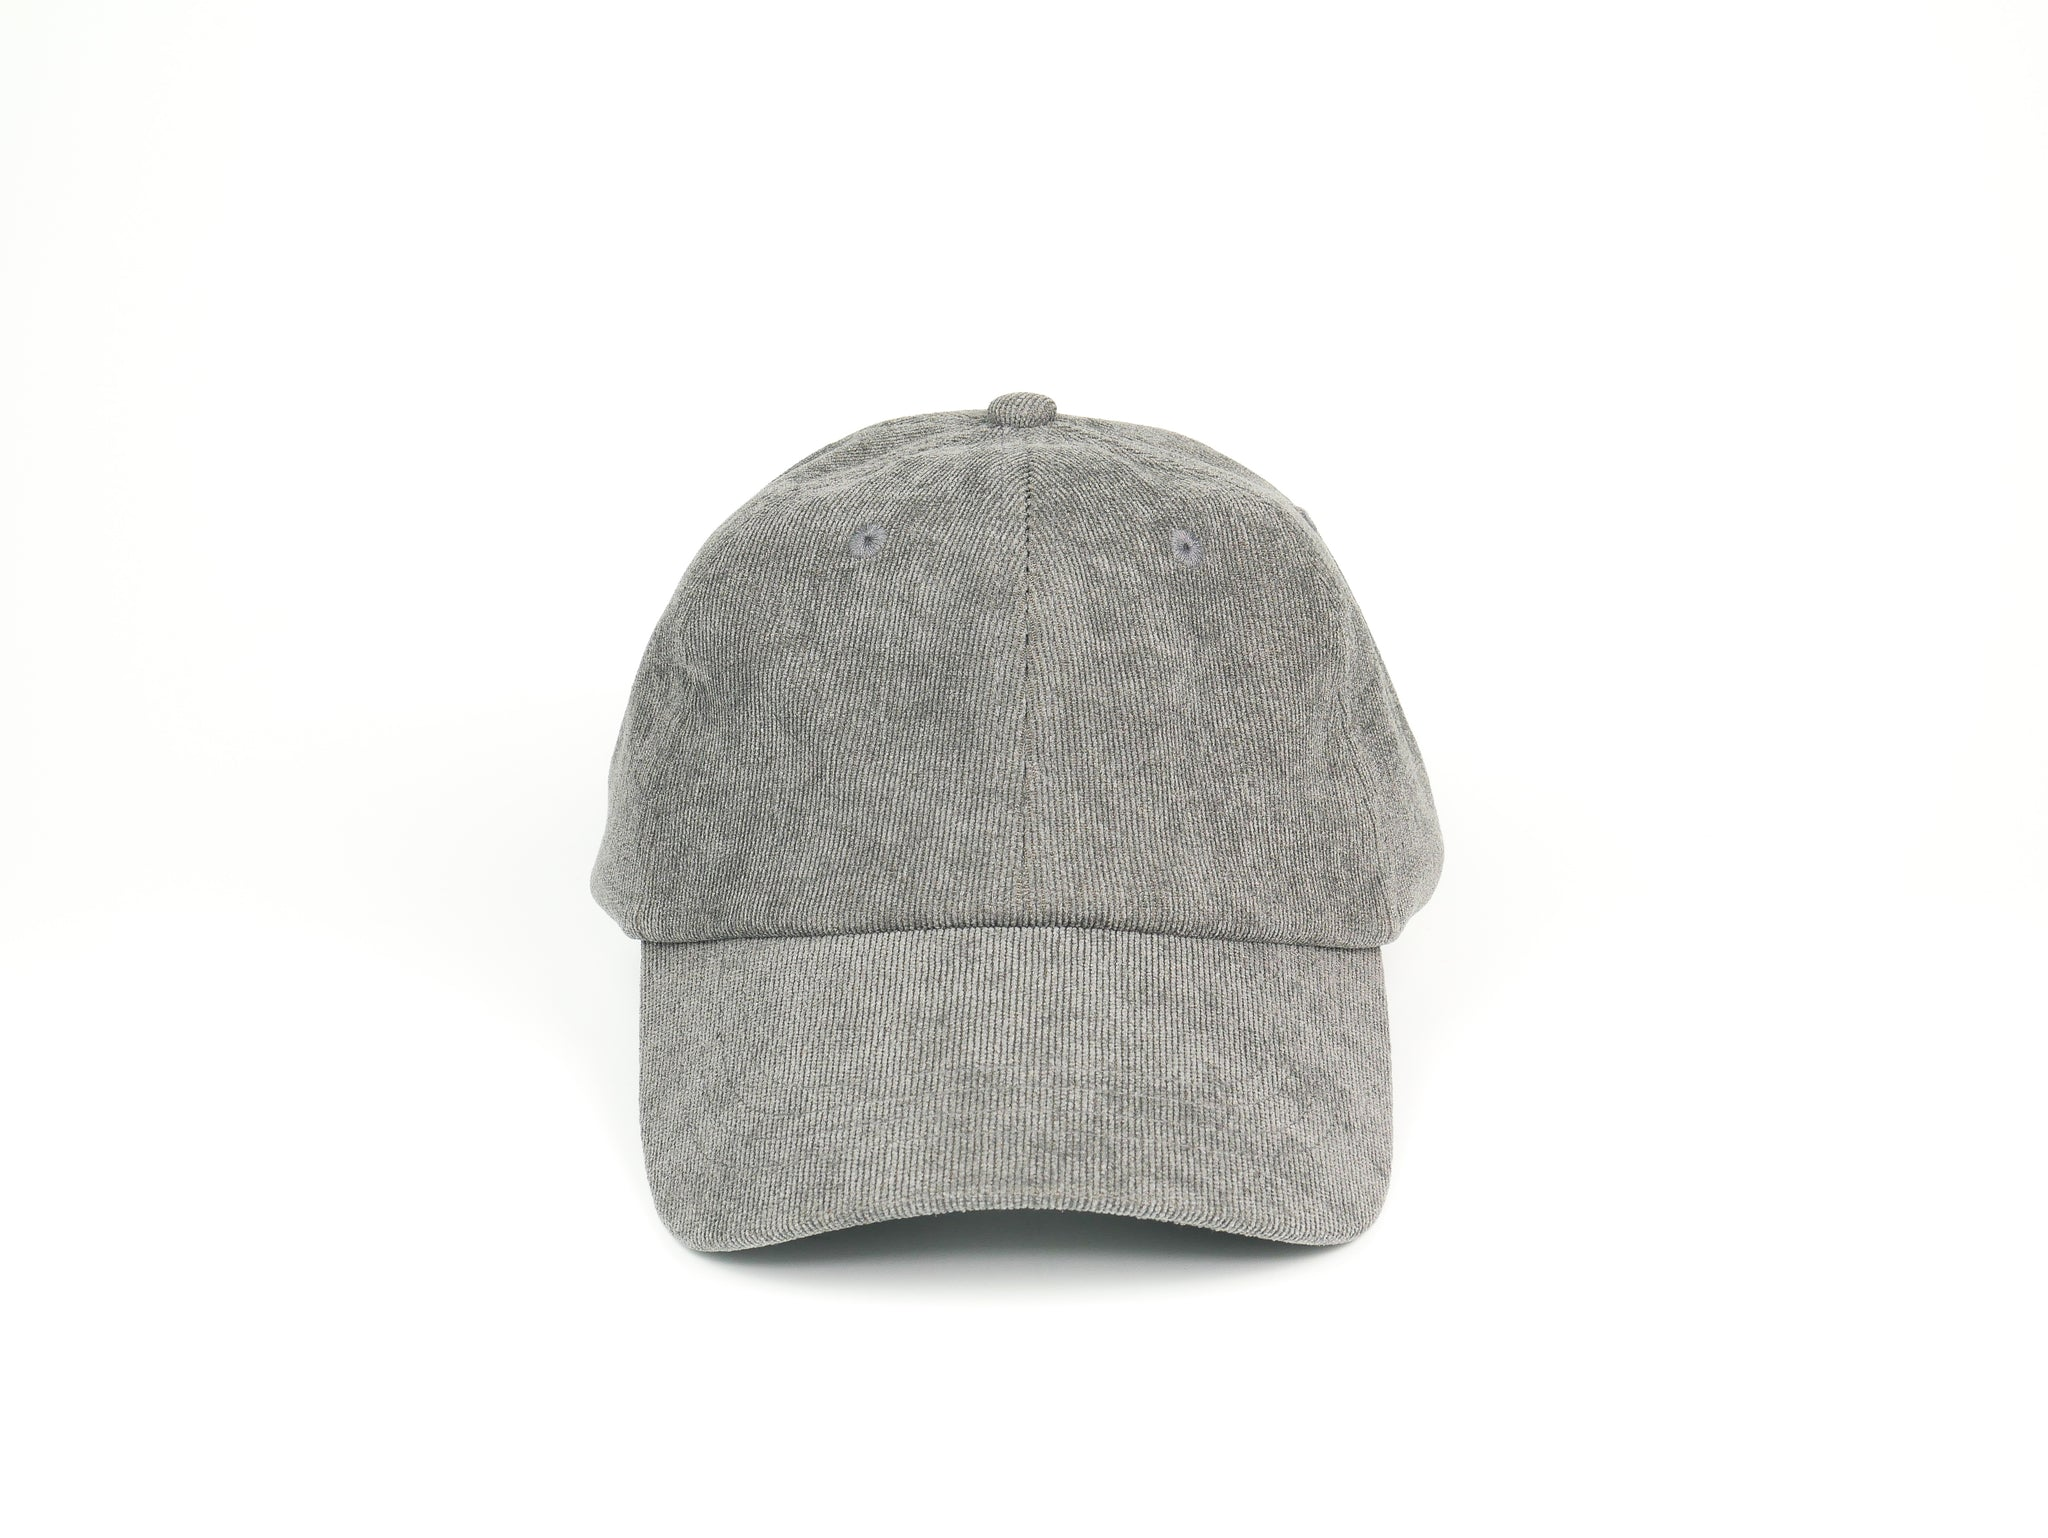 Thin Corduroy Dad Hat - Gray